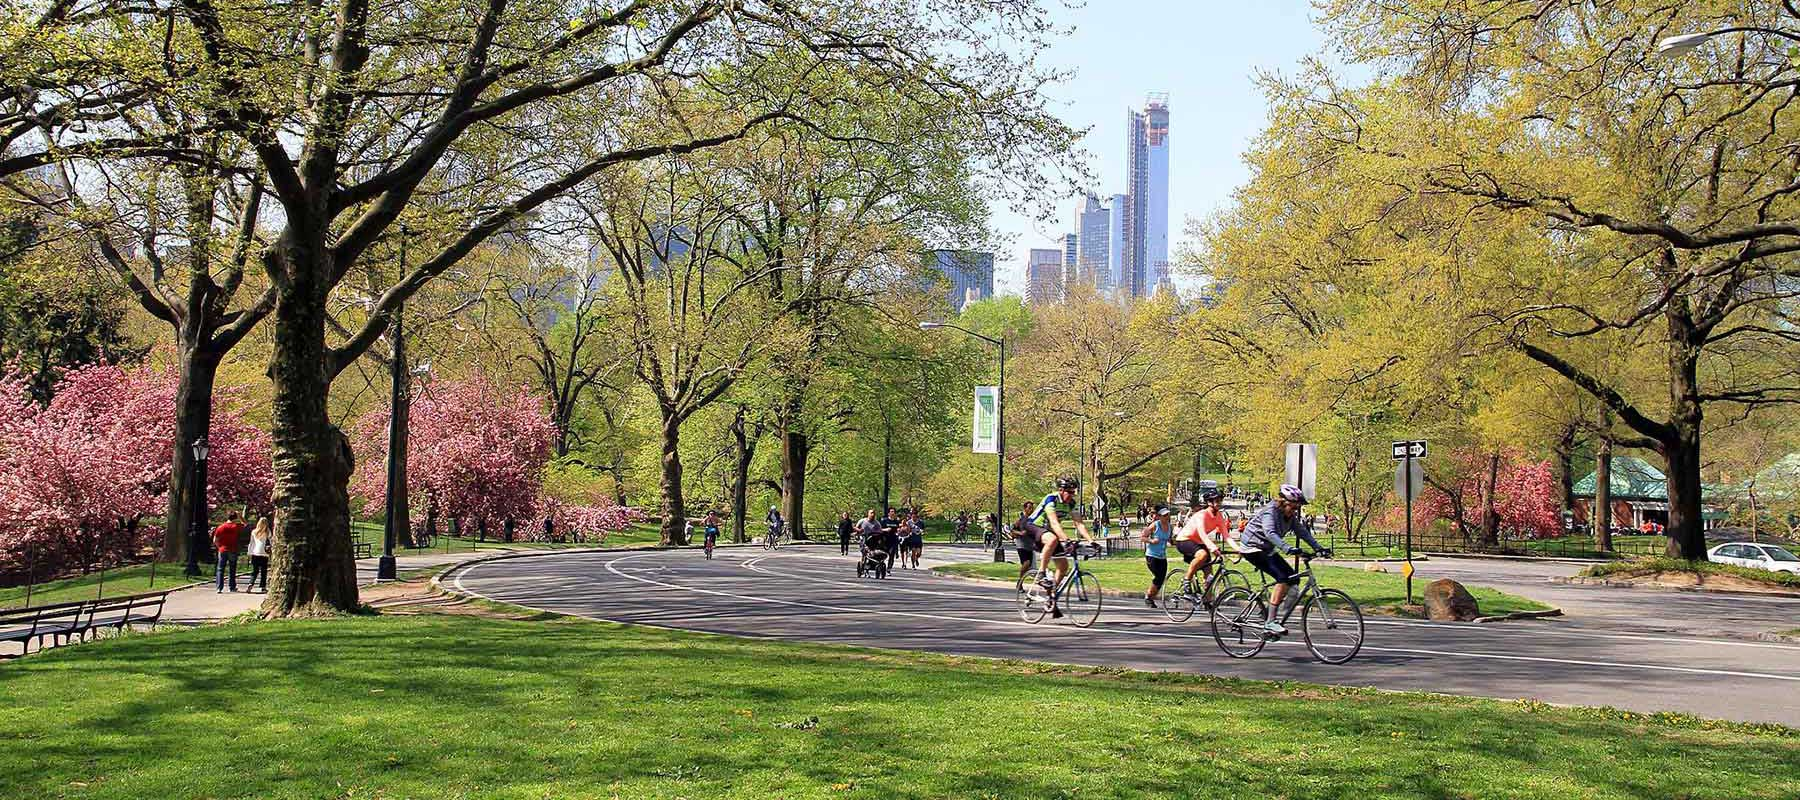 NYC Central Park in Spring